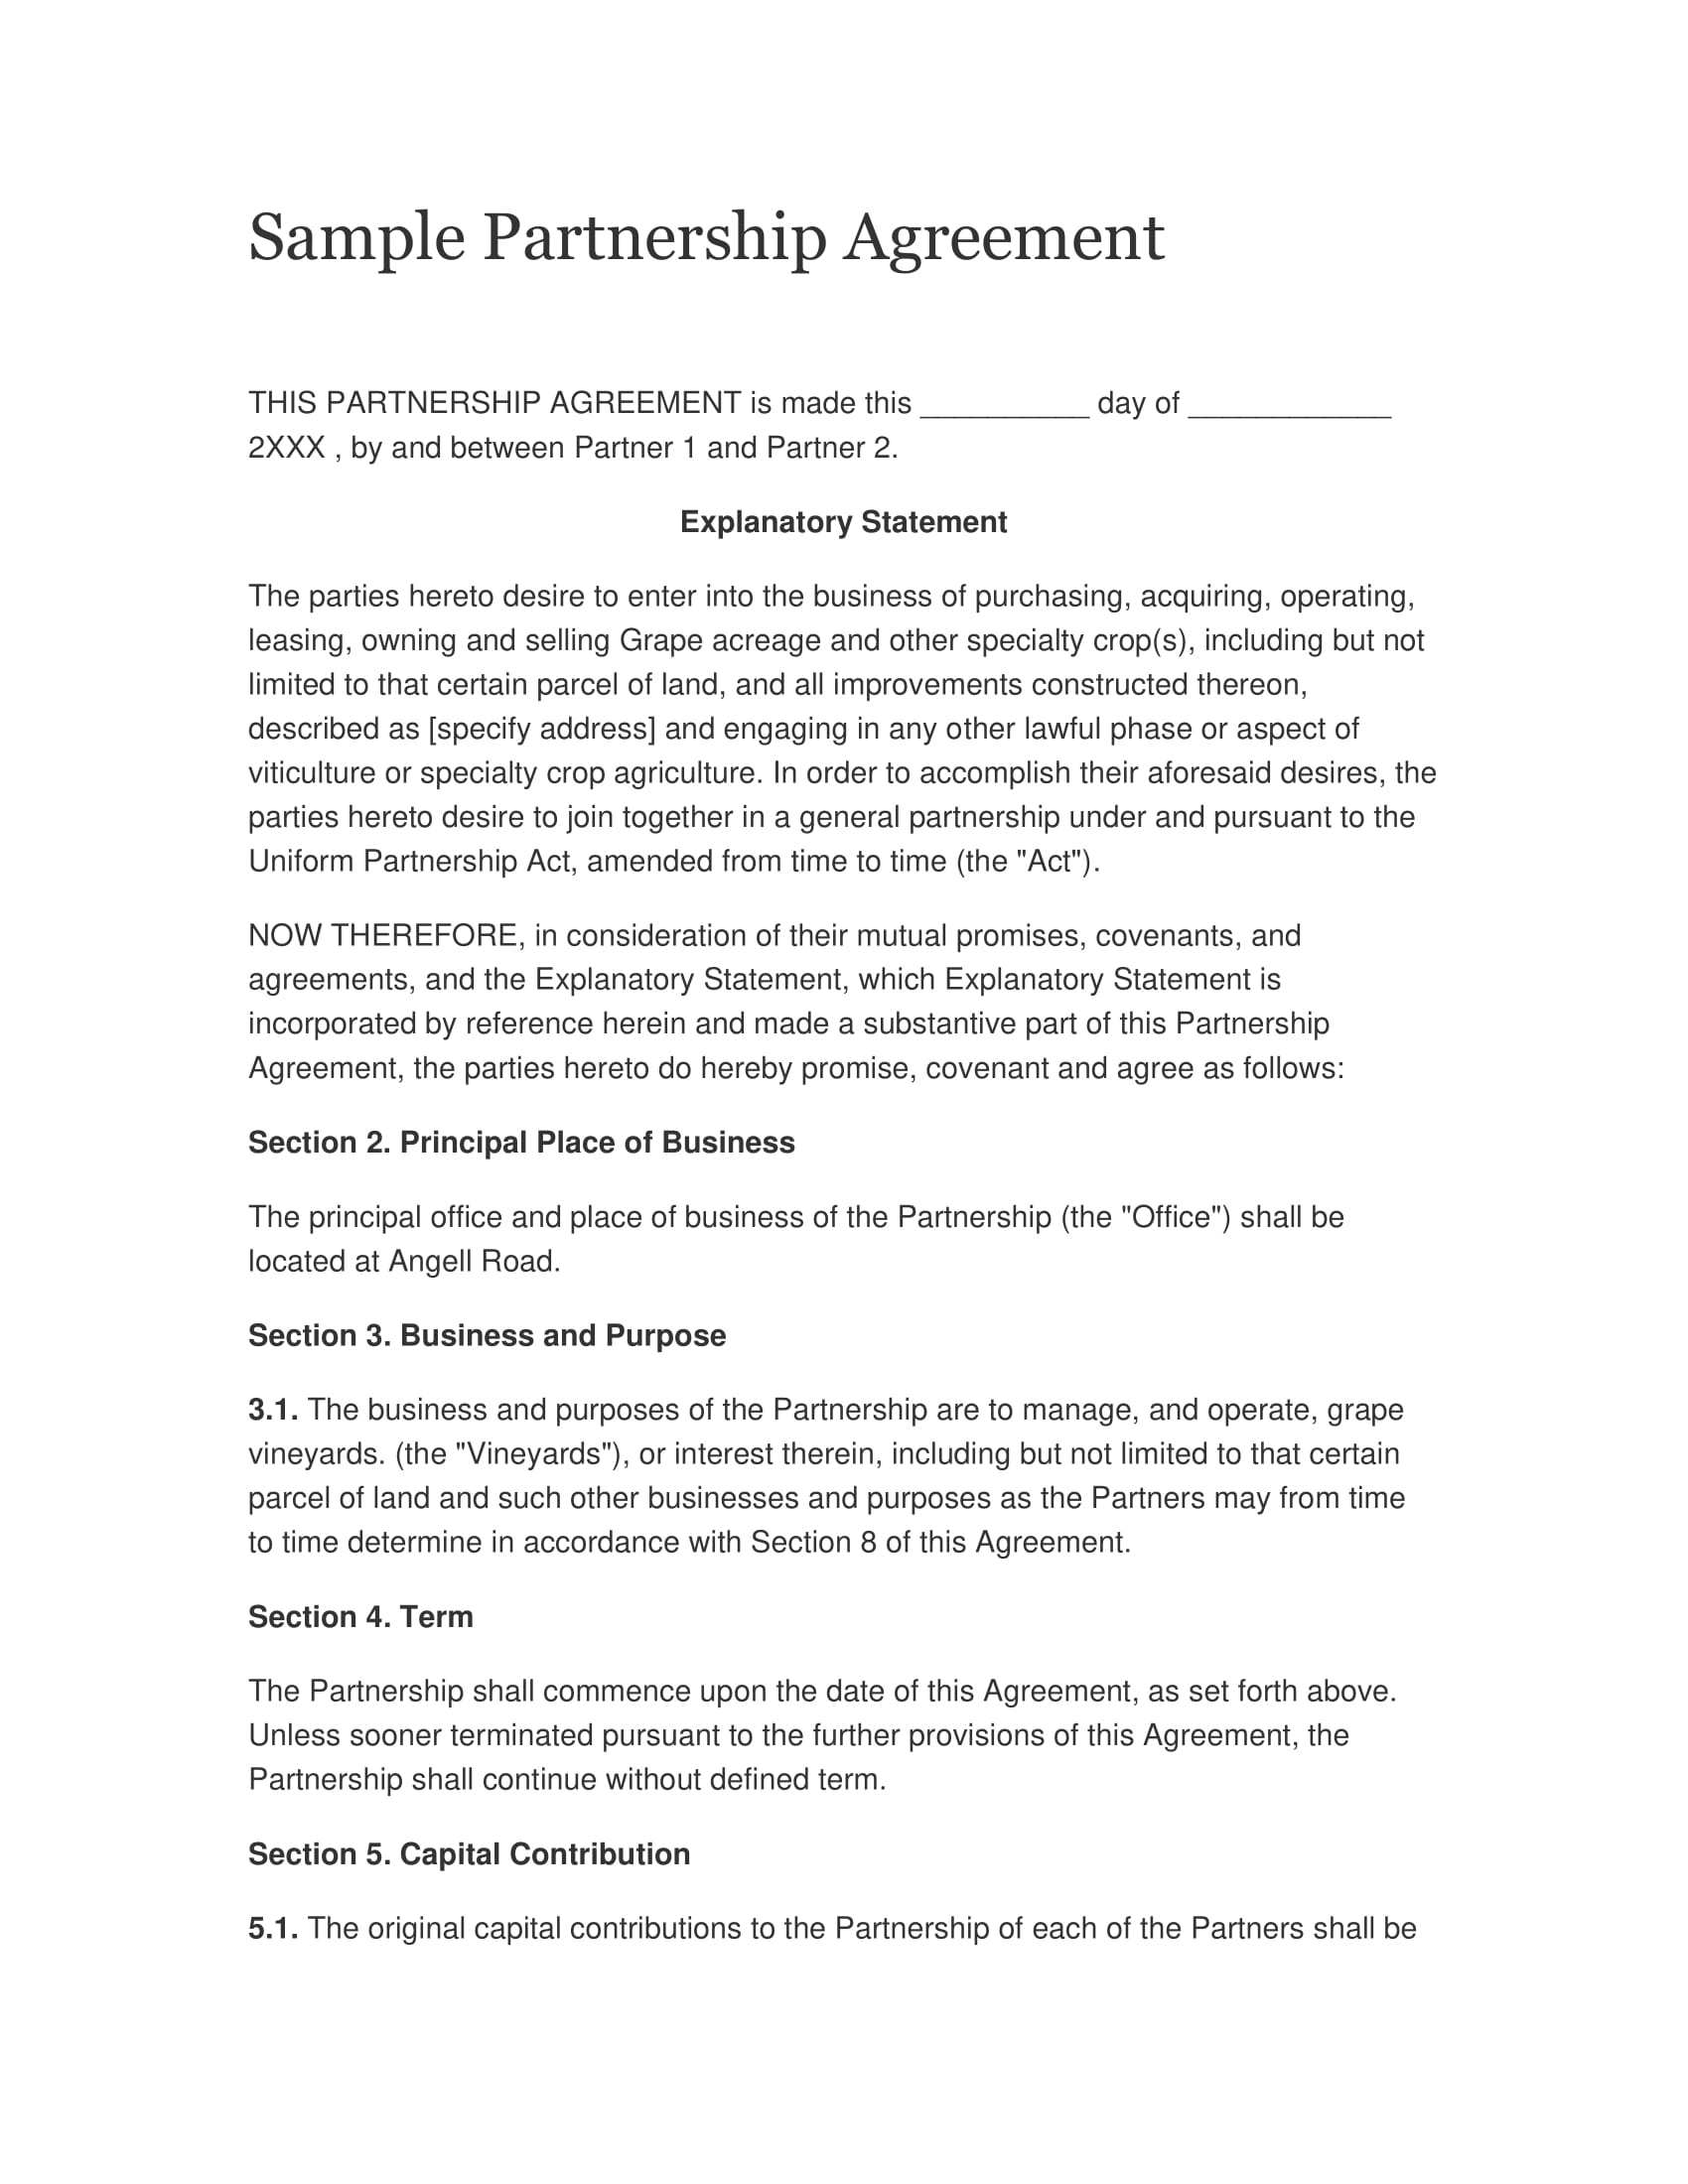 sample partnership agreement 01